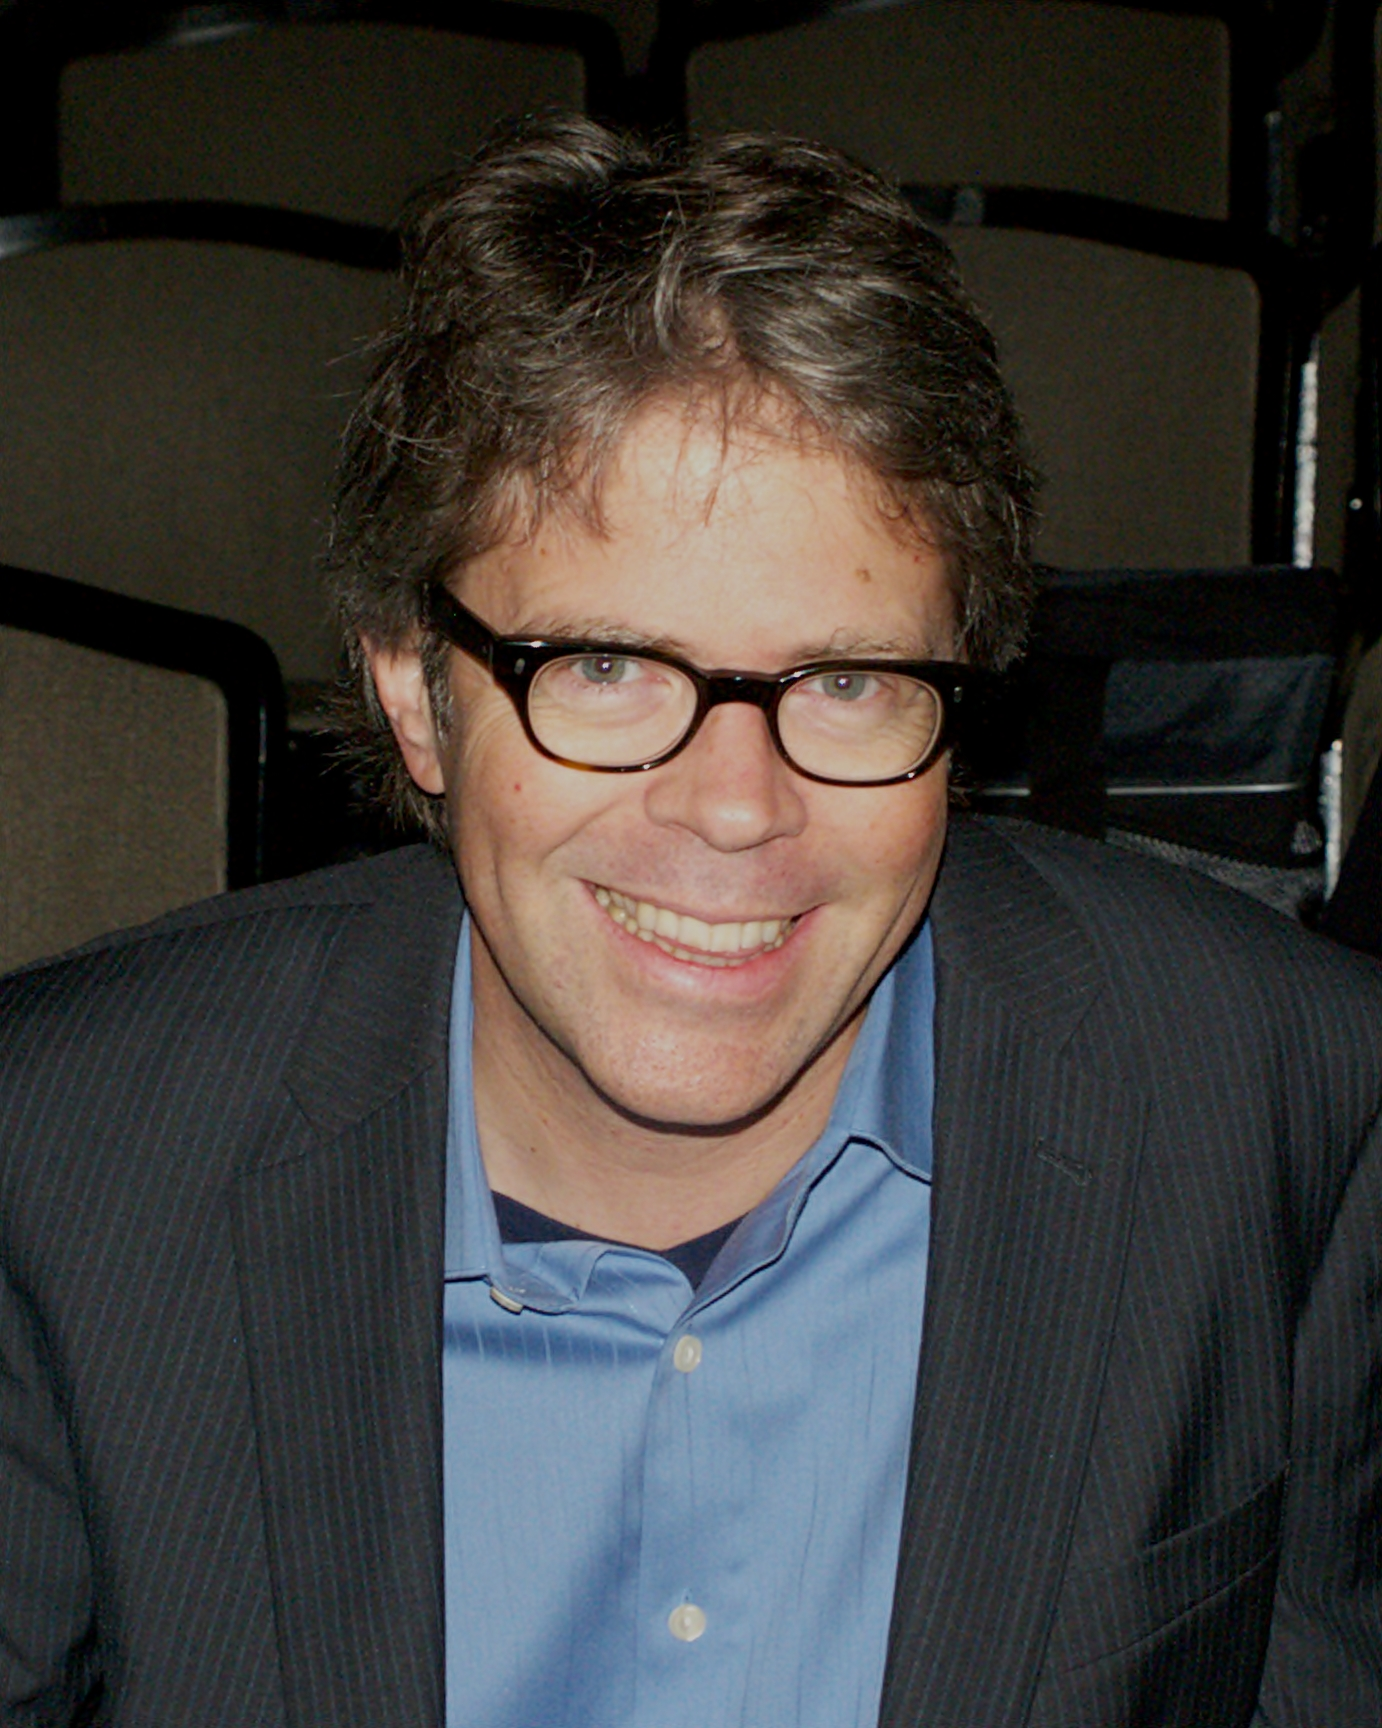 jonathan franzen the social encyclopedia jonathan franzen jonathan franzen the encyclopedia